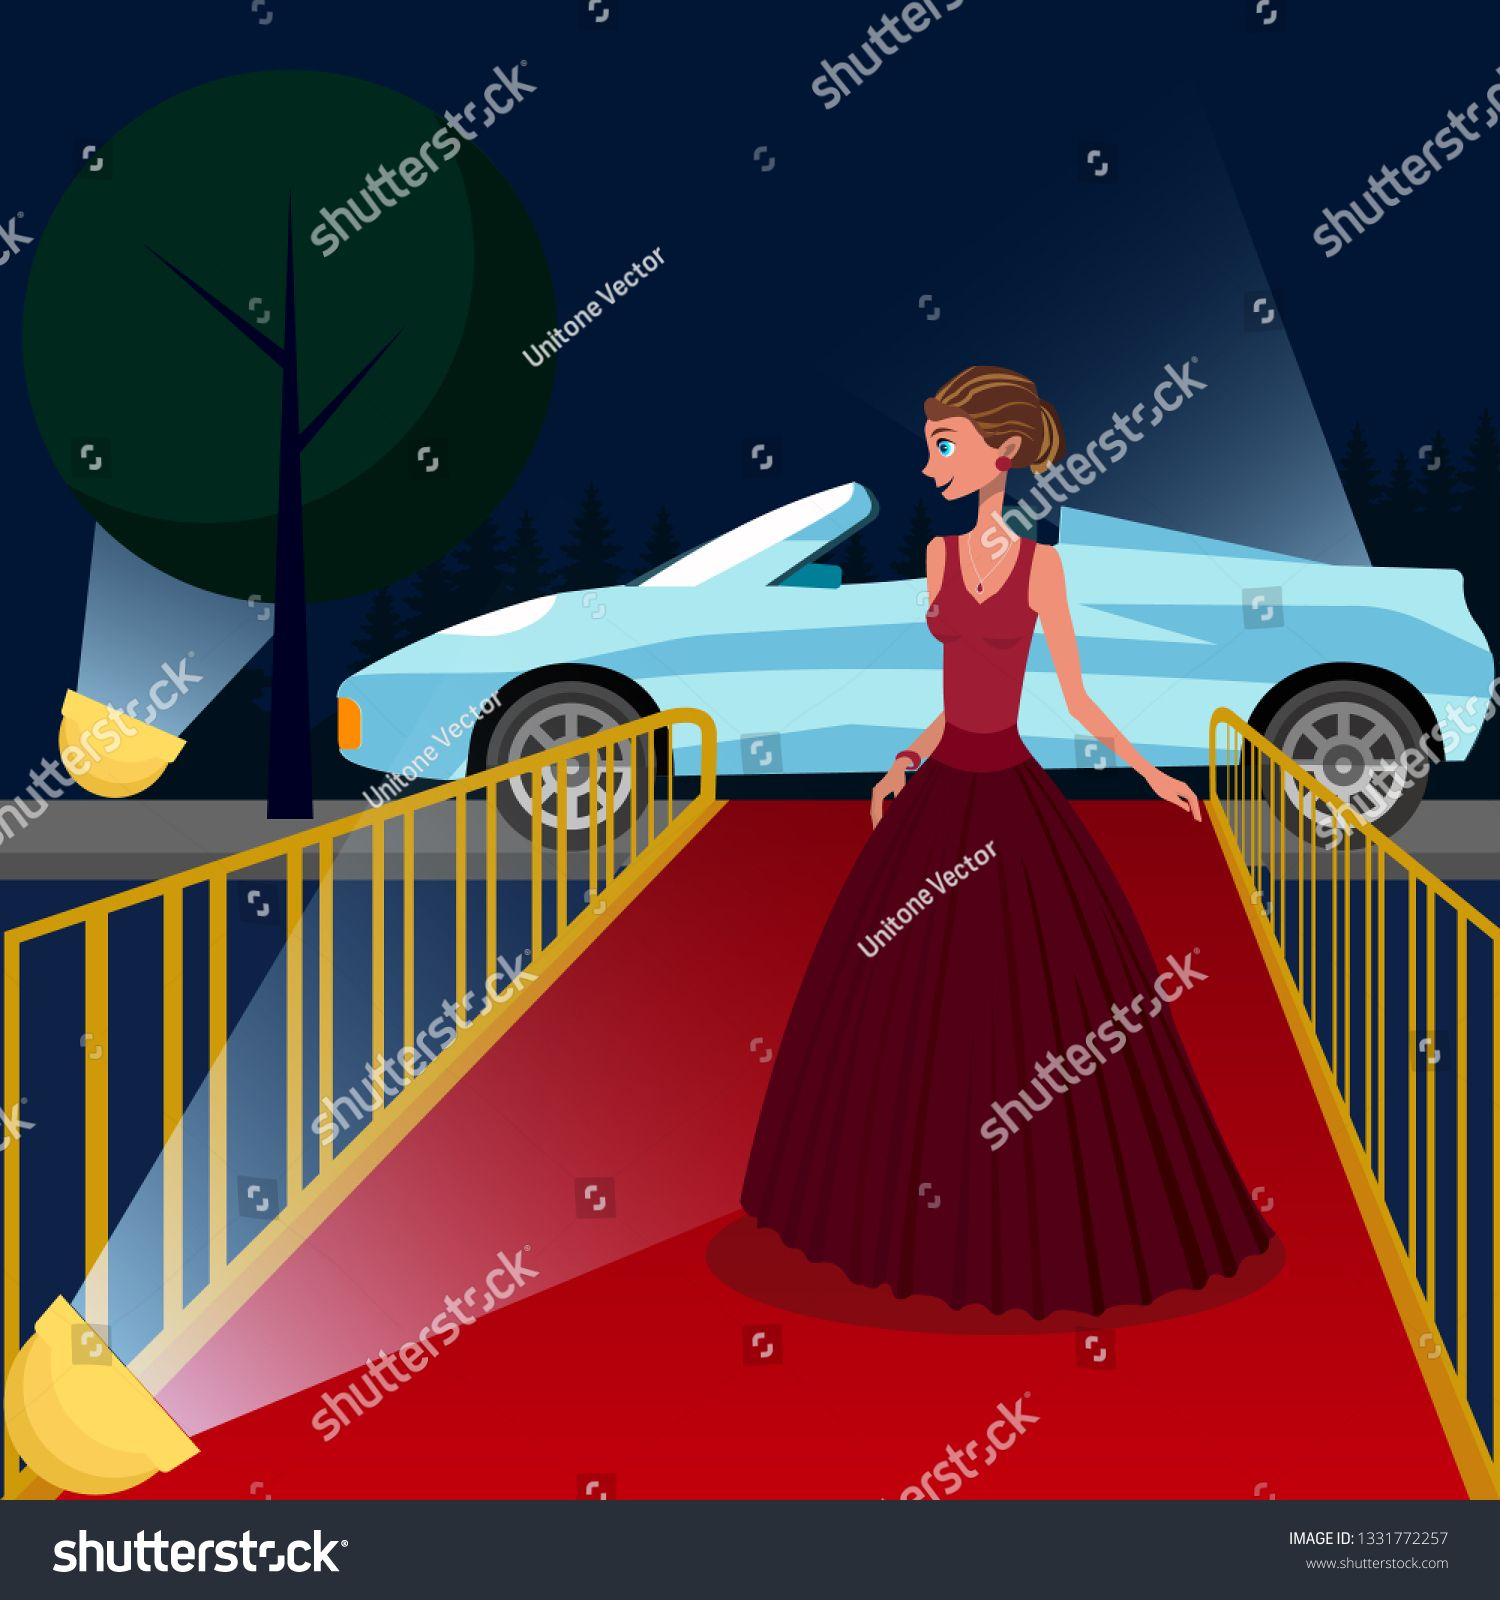 Young Woman At Vip Event Cartoon Illustration Girl In Luxury Evening Gown On Red Carpet Female Celebrity M Cartoon Illustration Fashion Models Flat Drawings